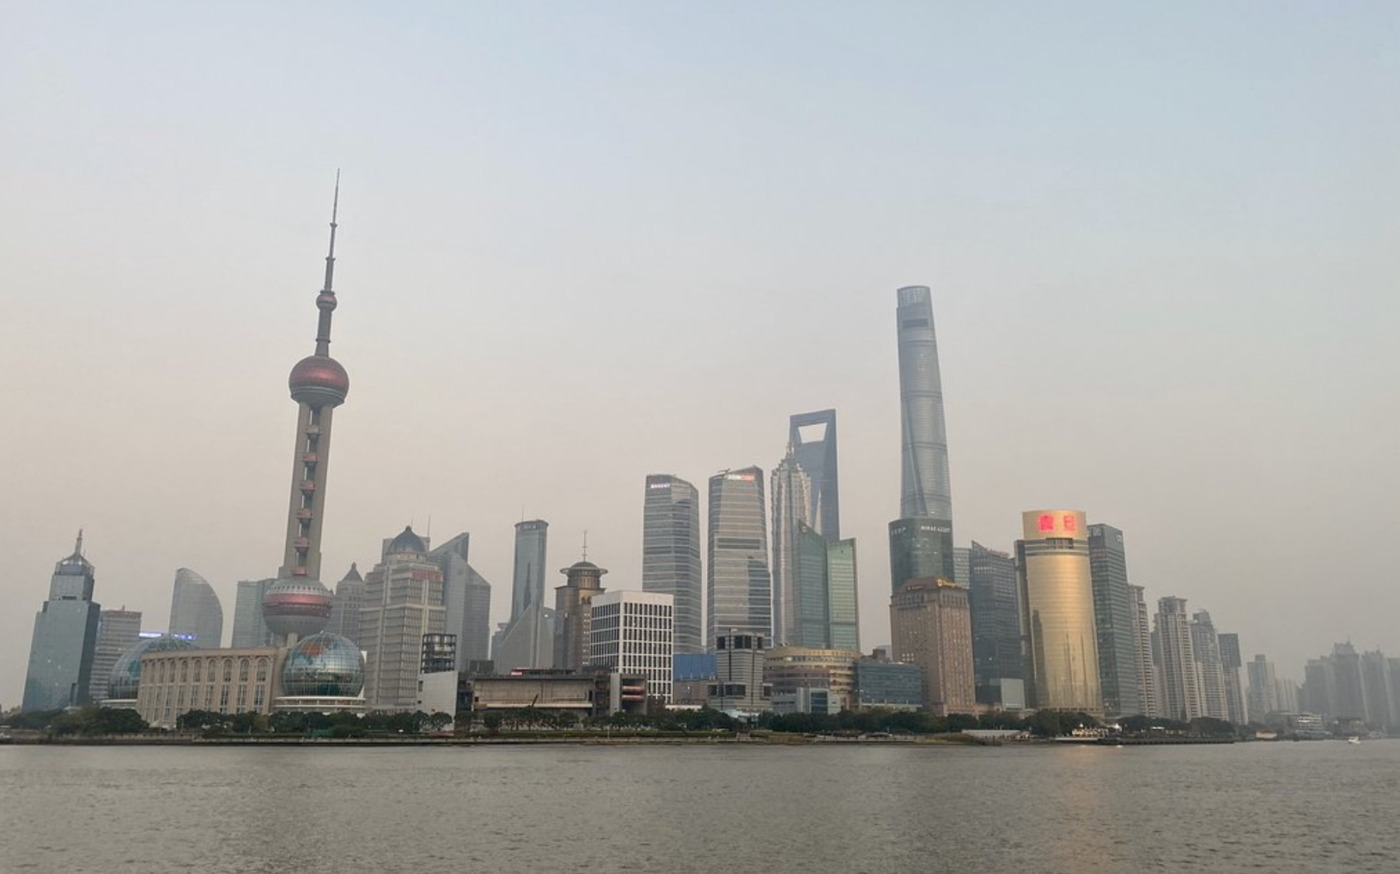 User submitted photo of The Bund